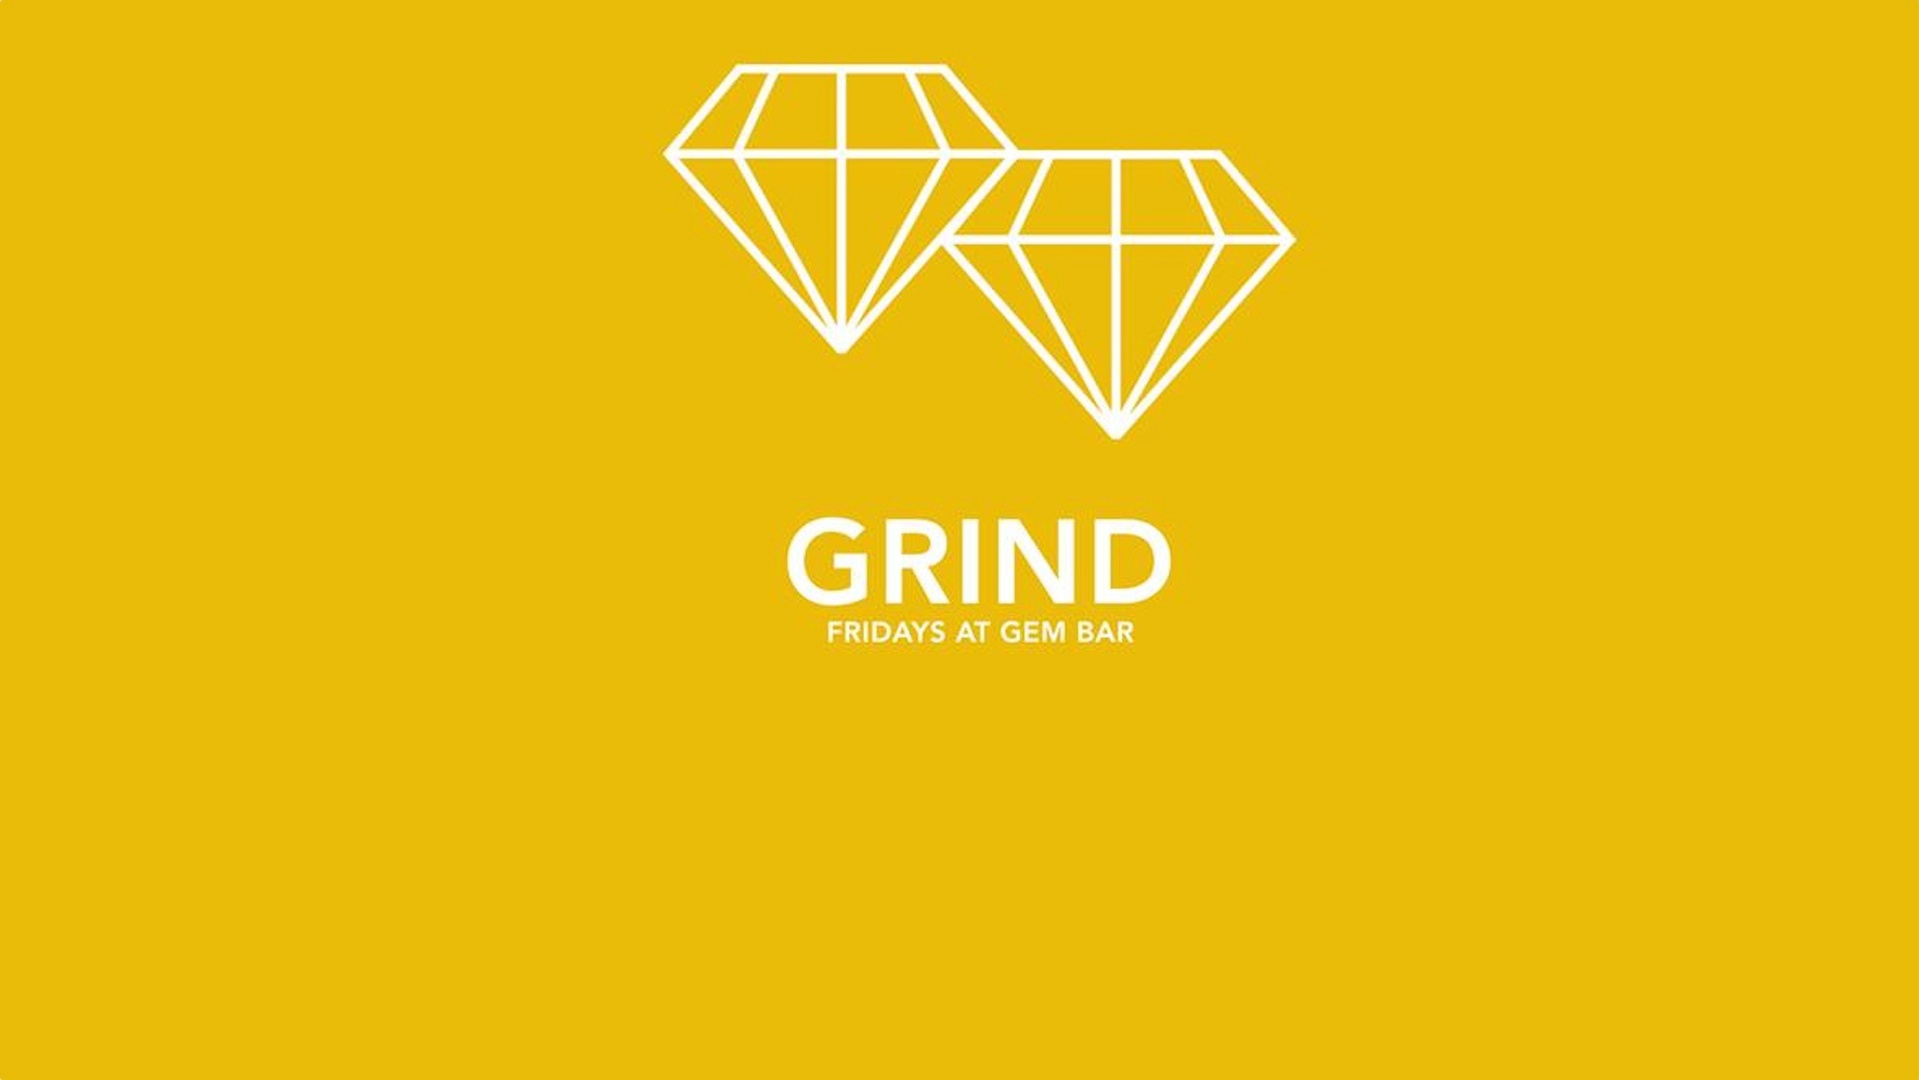 Grind with Matteblacc